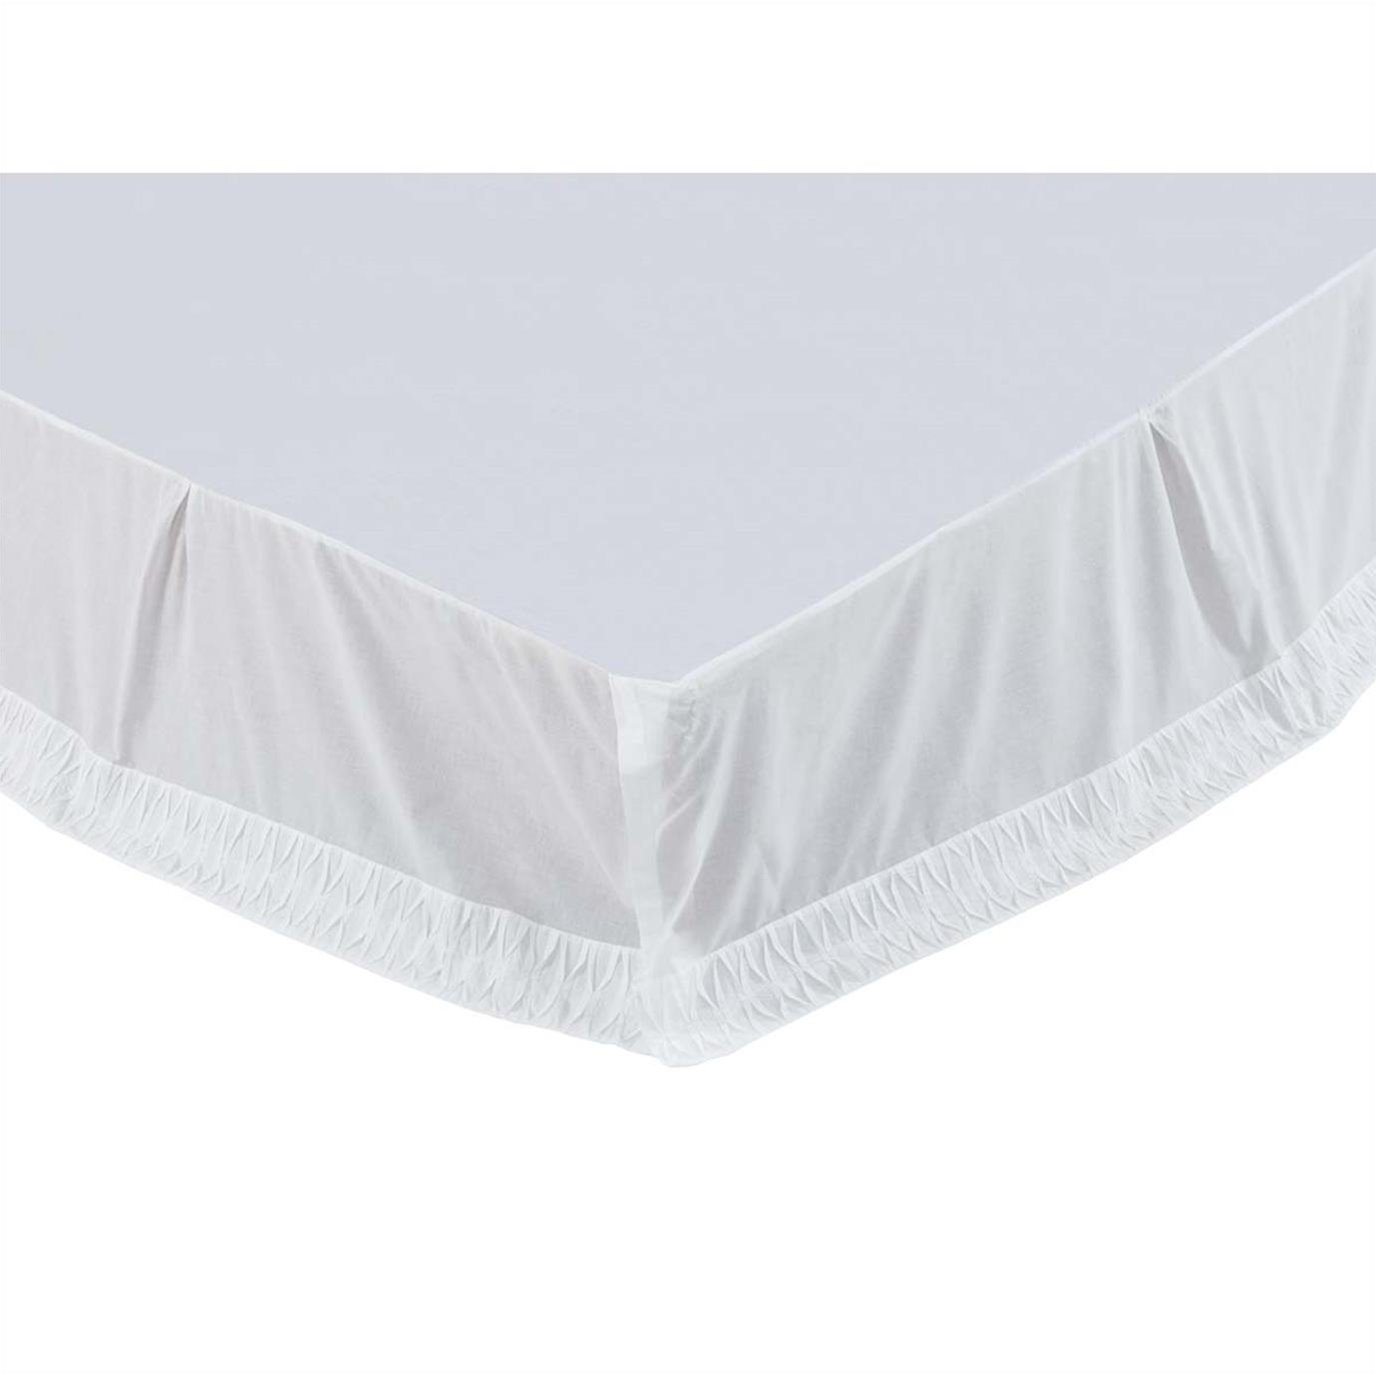 Adelia White Twin Bed Skirt 39x76x16